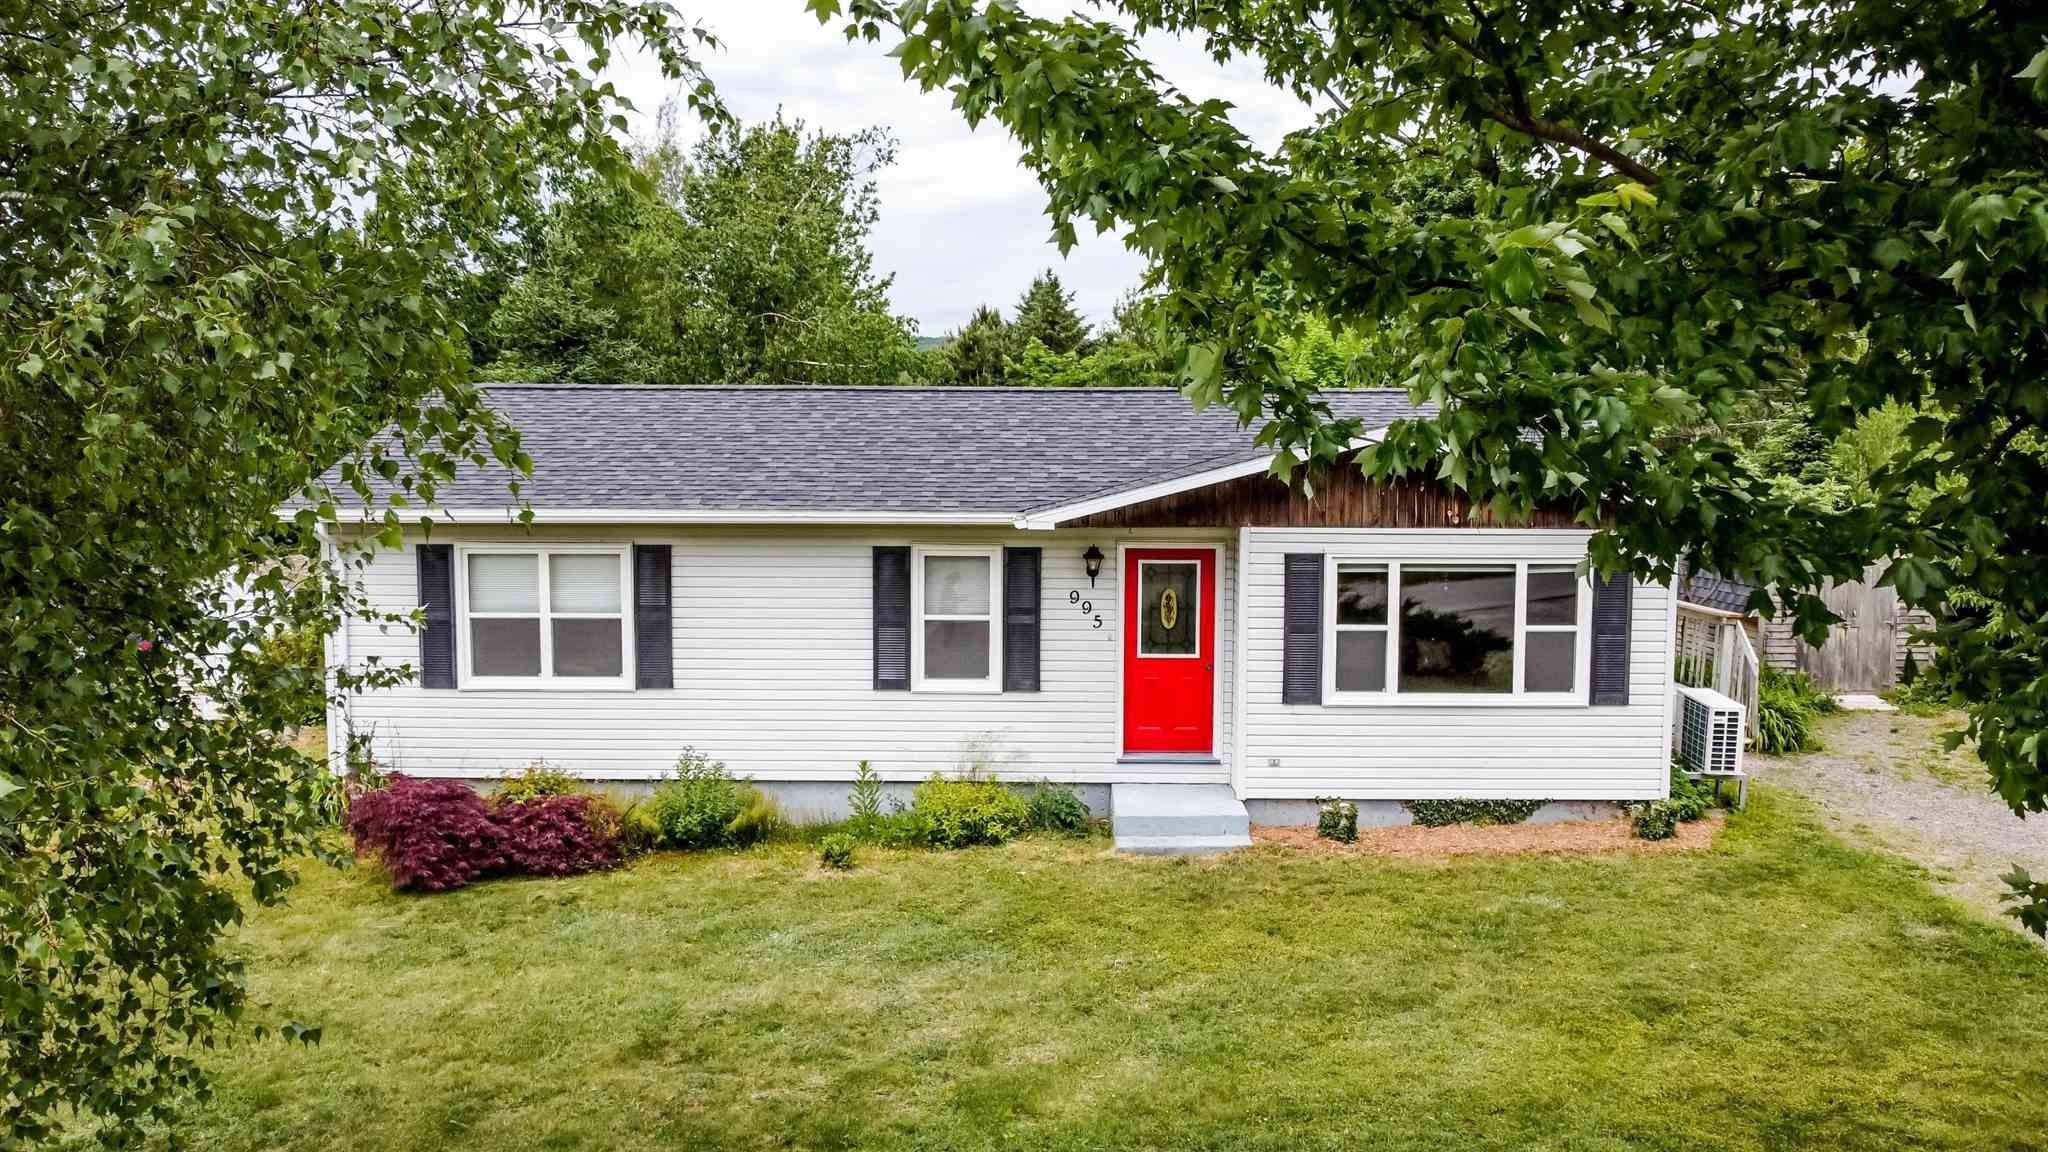 Main Photo: 995 Anthony Avenue in Centreville: 404-Kings County Residential for sale (Annapolis Valley)  : MLS®# 202115363